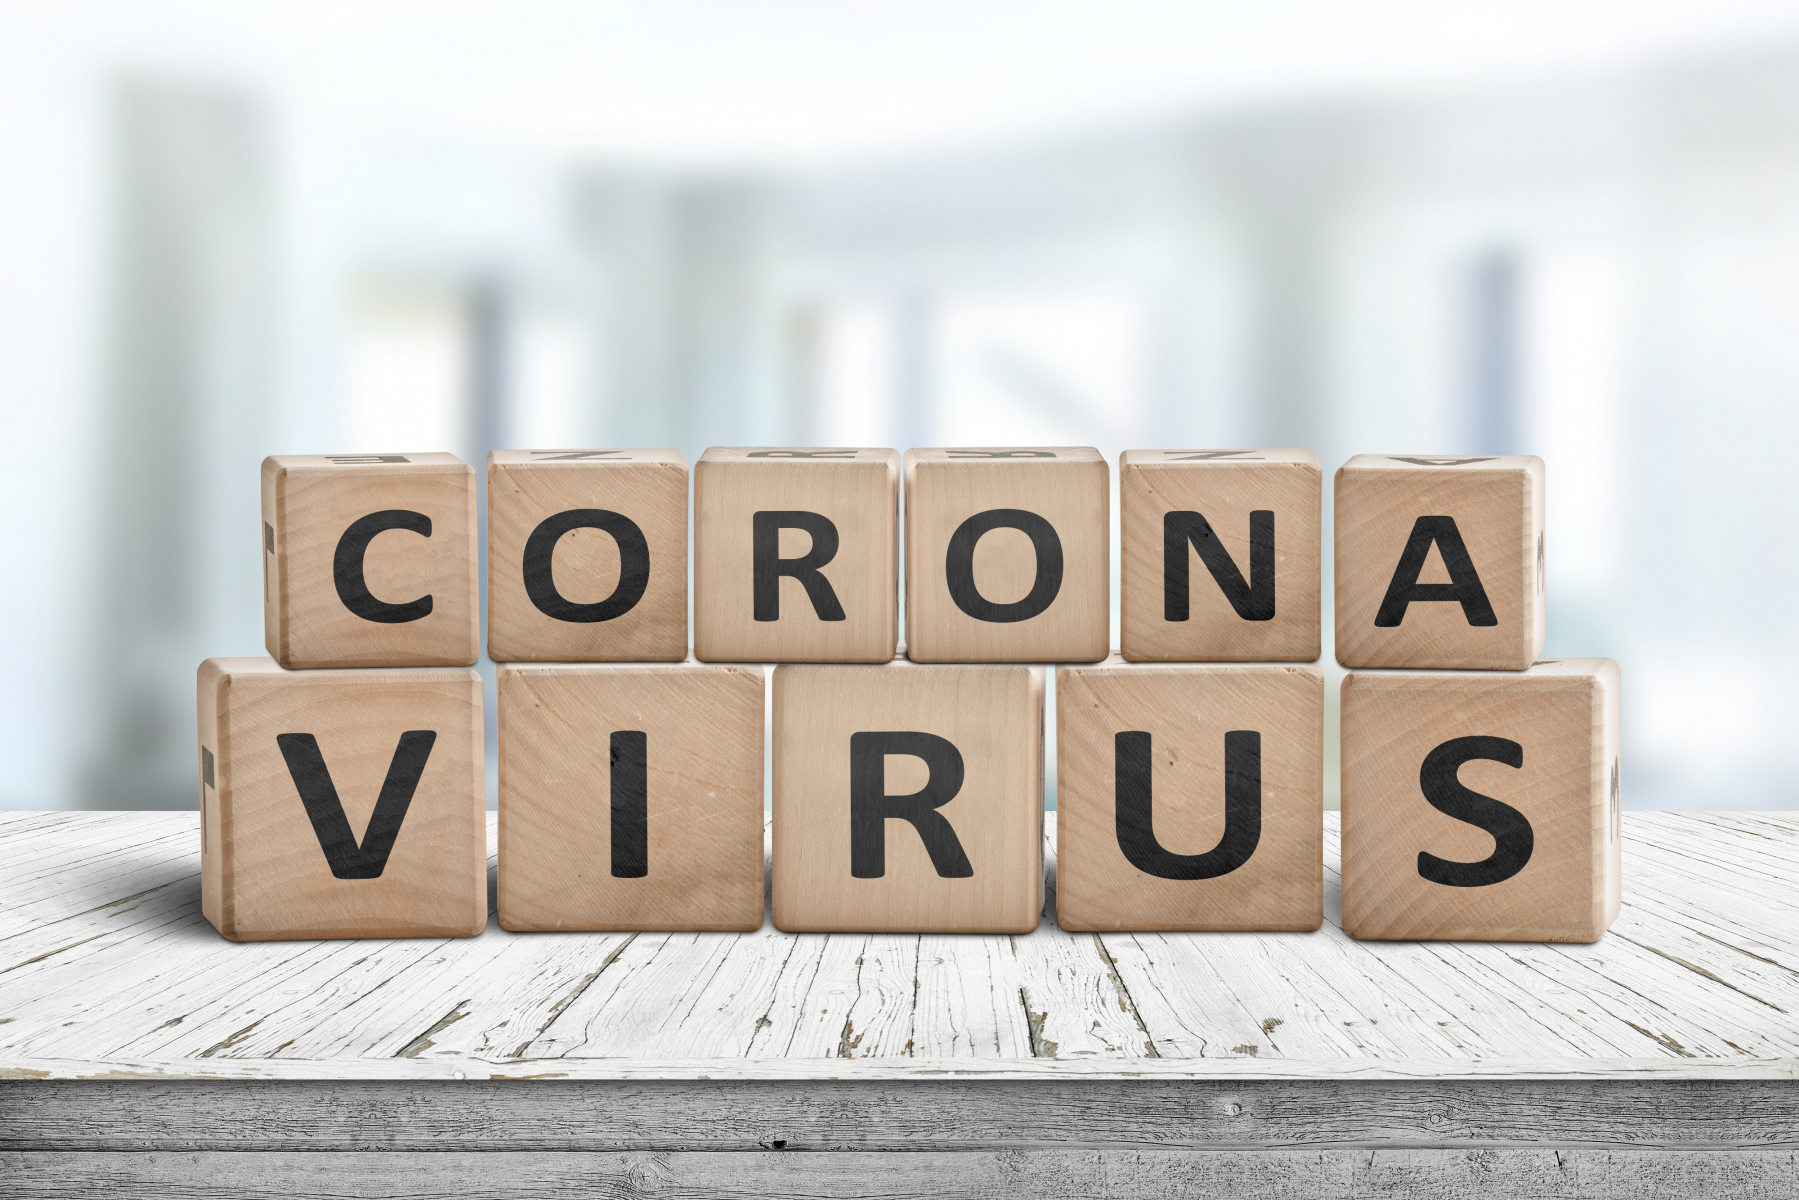 35849192-corona-virus-alert-message-on-a-worn-wooden-desk